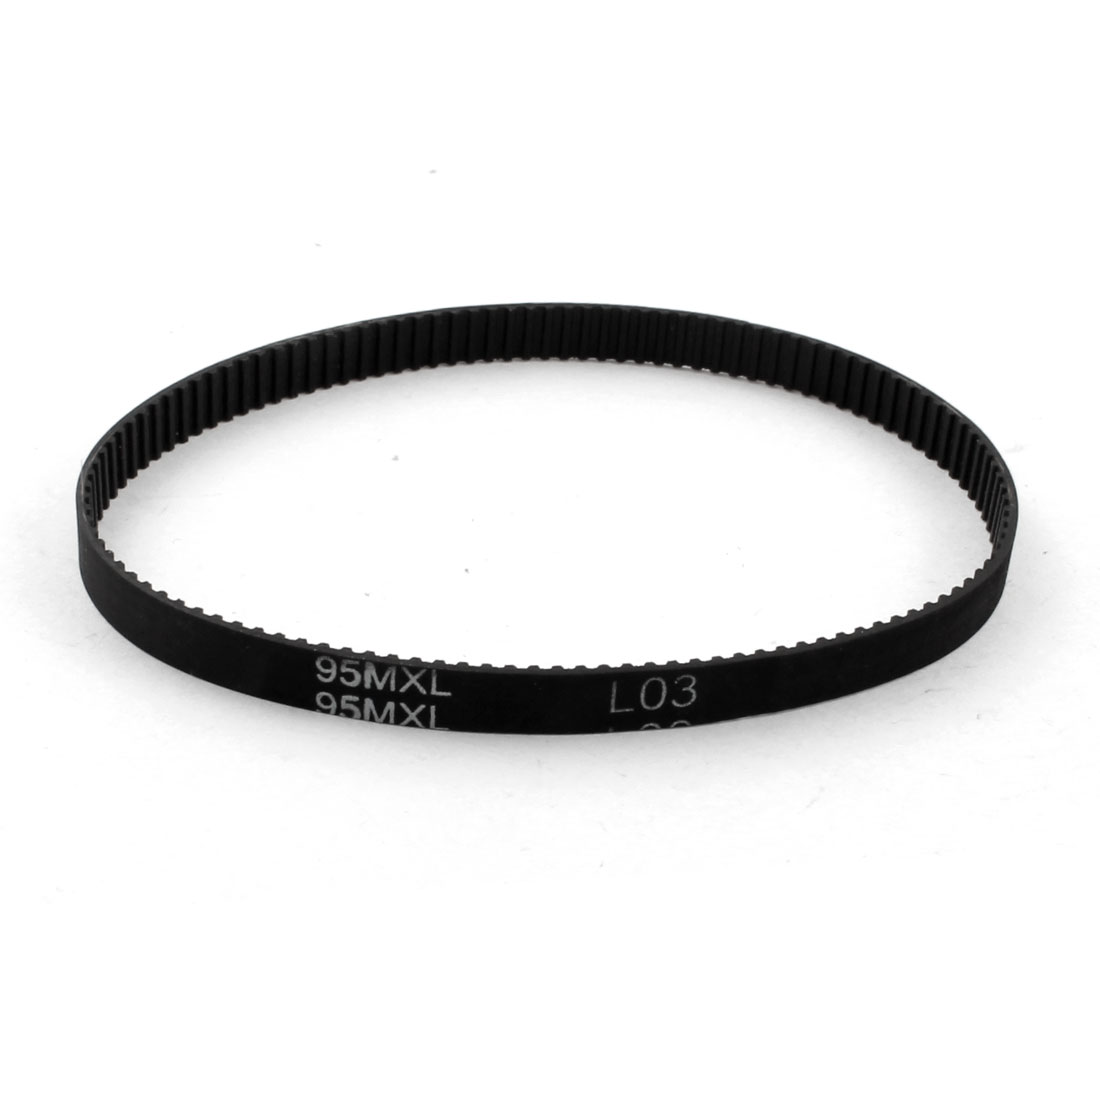 "95MXL025 119 Teeth 2.032mm Pitch 1/4"" Width Single Side Black Industrial Stepper Motor Groove Synchronous Timing Belt 9.5"""